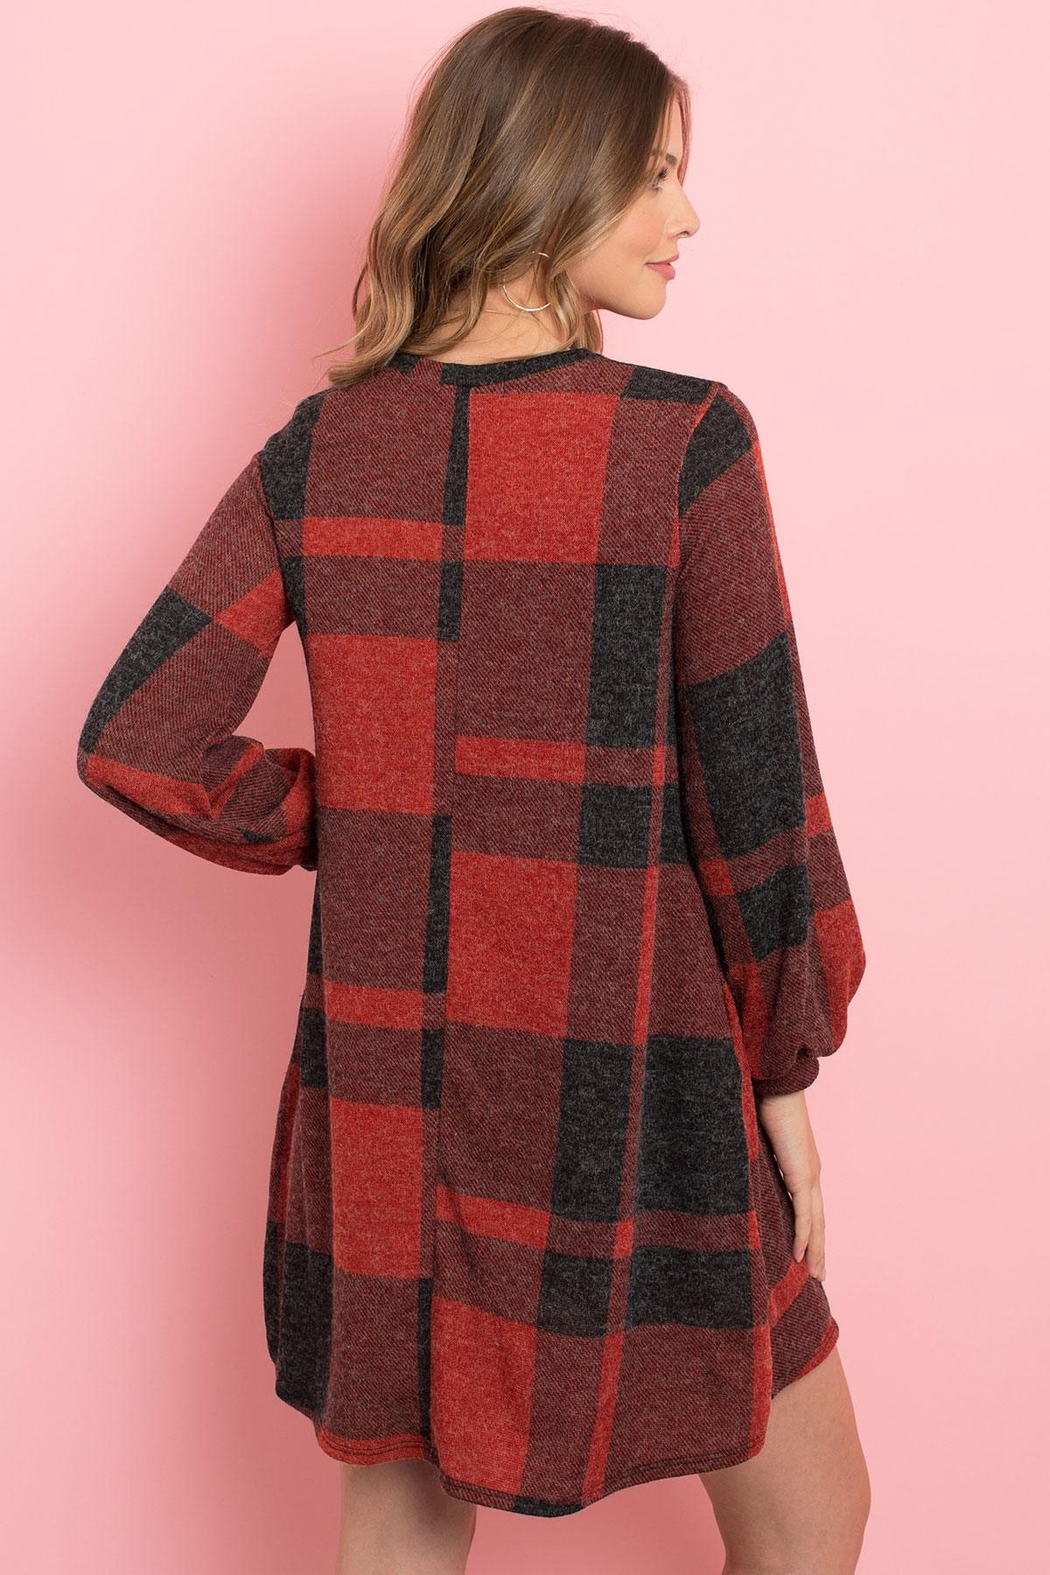 Riah Fashion Round-Neck-Puff-Sleeved-Plaid-Knee-Length-Dress - Side Cropped Image